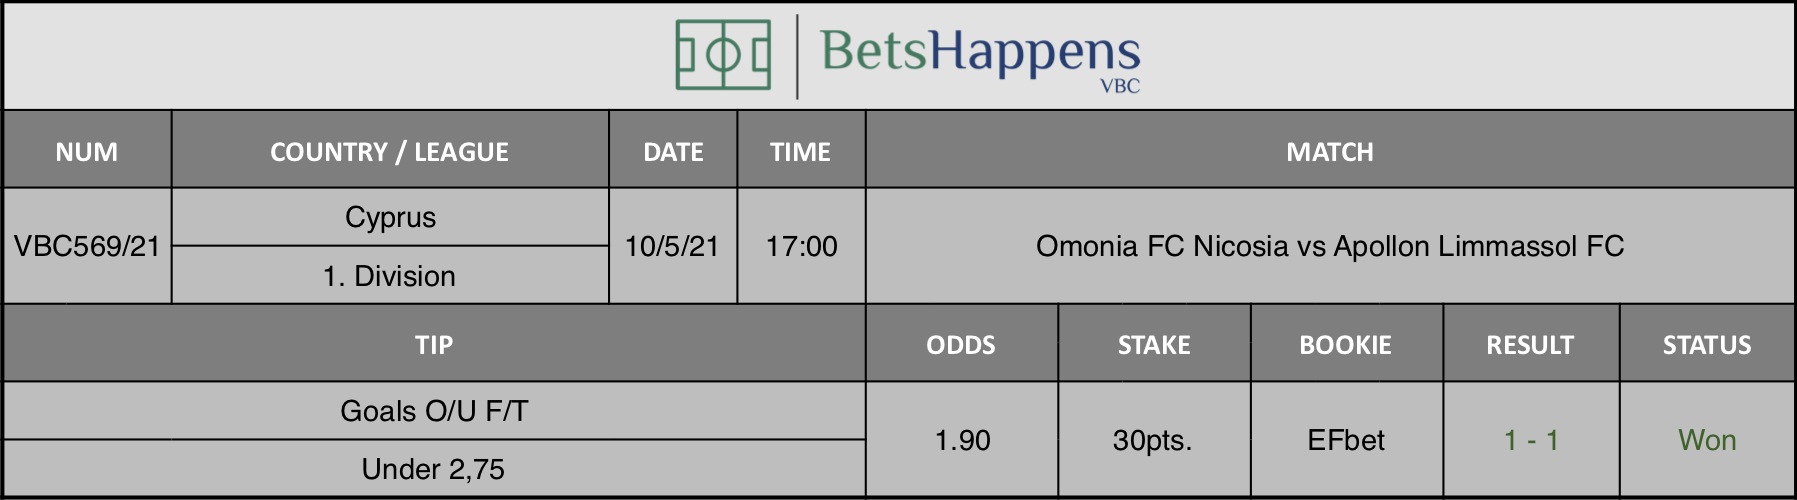 Results of our tip for the Omonia FC Nicosia vs Apollon Limmassol FC match where Goals O/U F/T Under 2,75 is recommended.